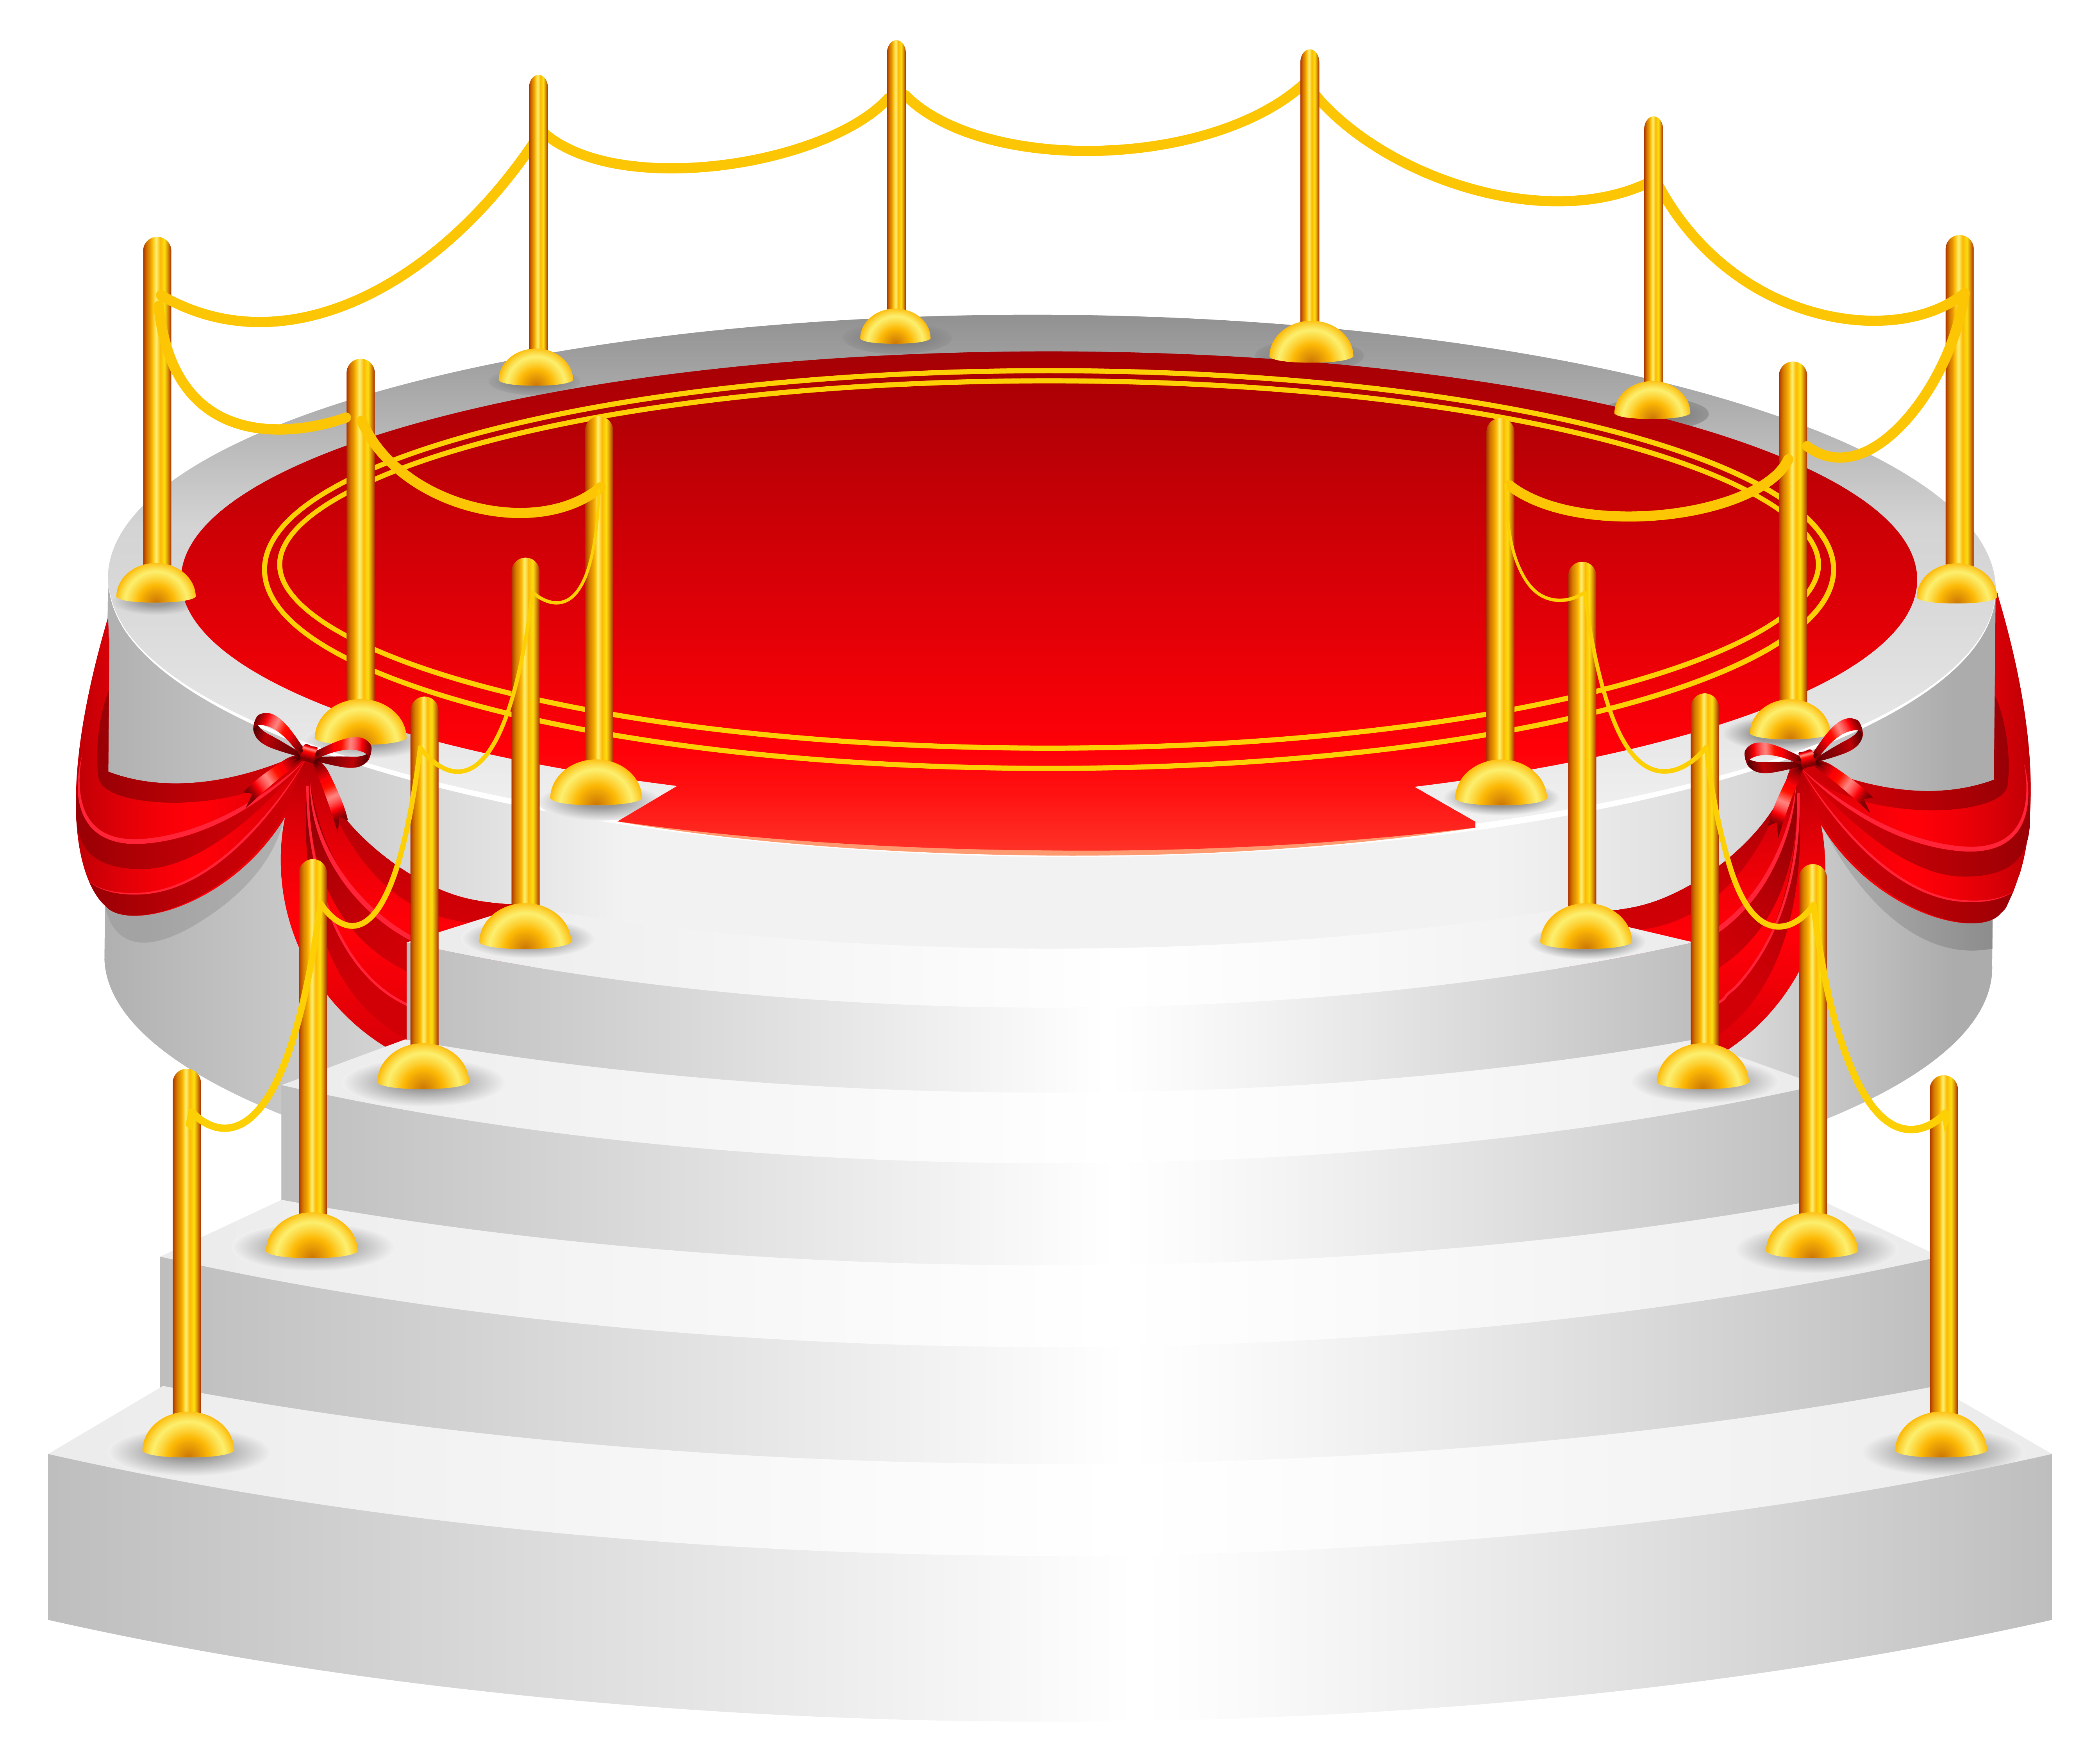 Theatre clipart live performance. Stage png clip art